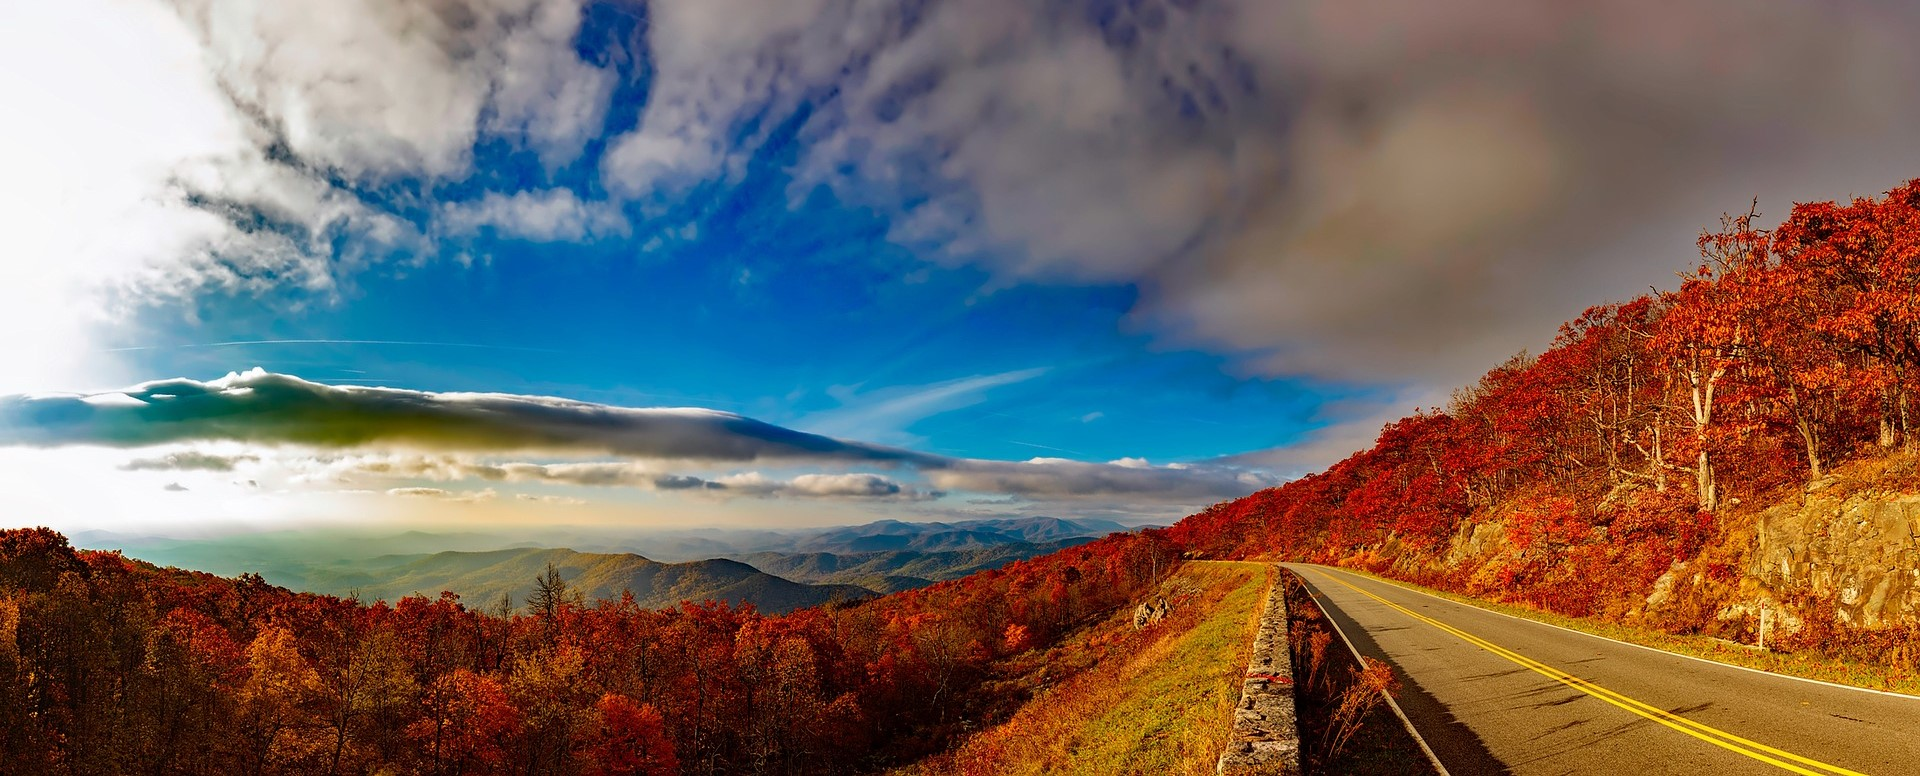 The Blue Ridge Mountains is a part of a larger mountain range located in Virginia | Kids Car Donations